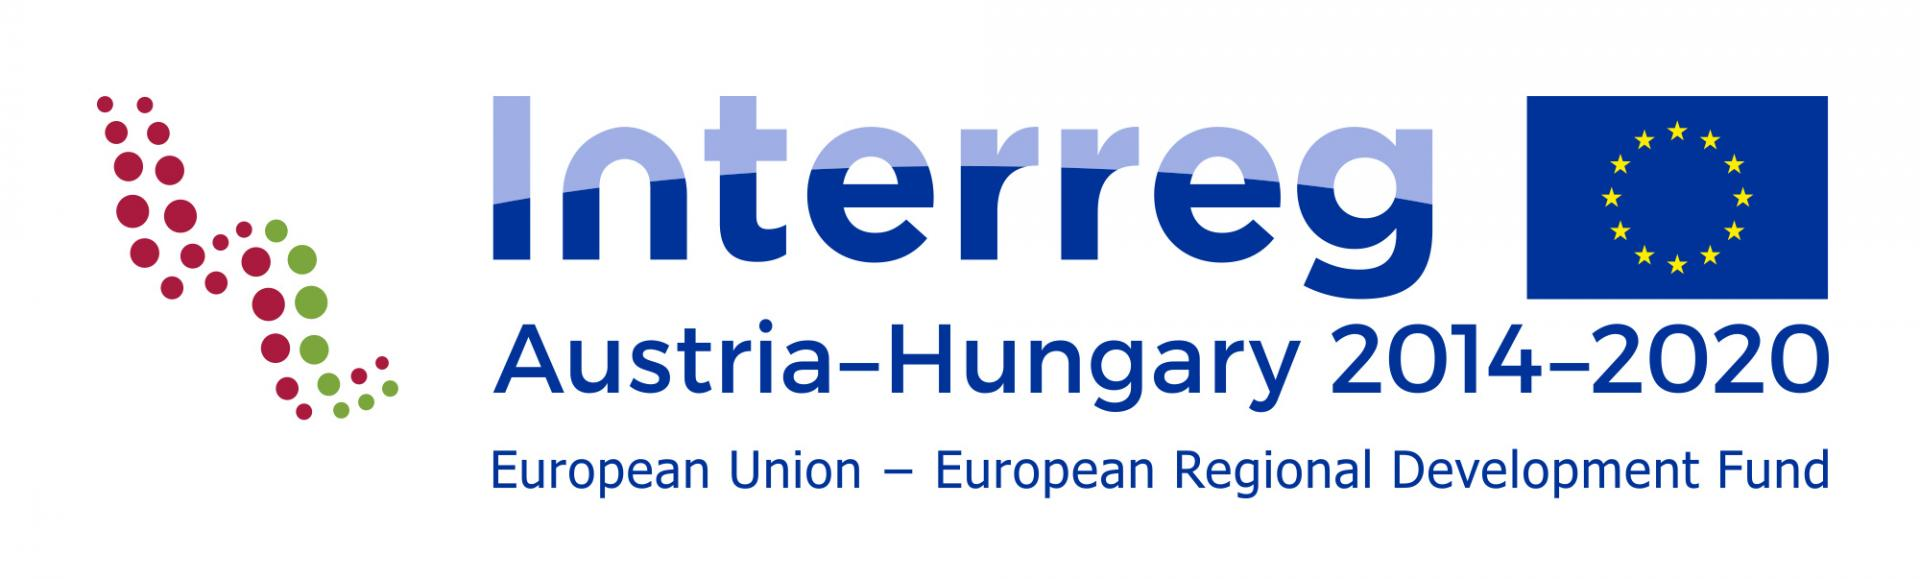 https%3A//www.interreg-athu.eu/en/borderhistories/